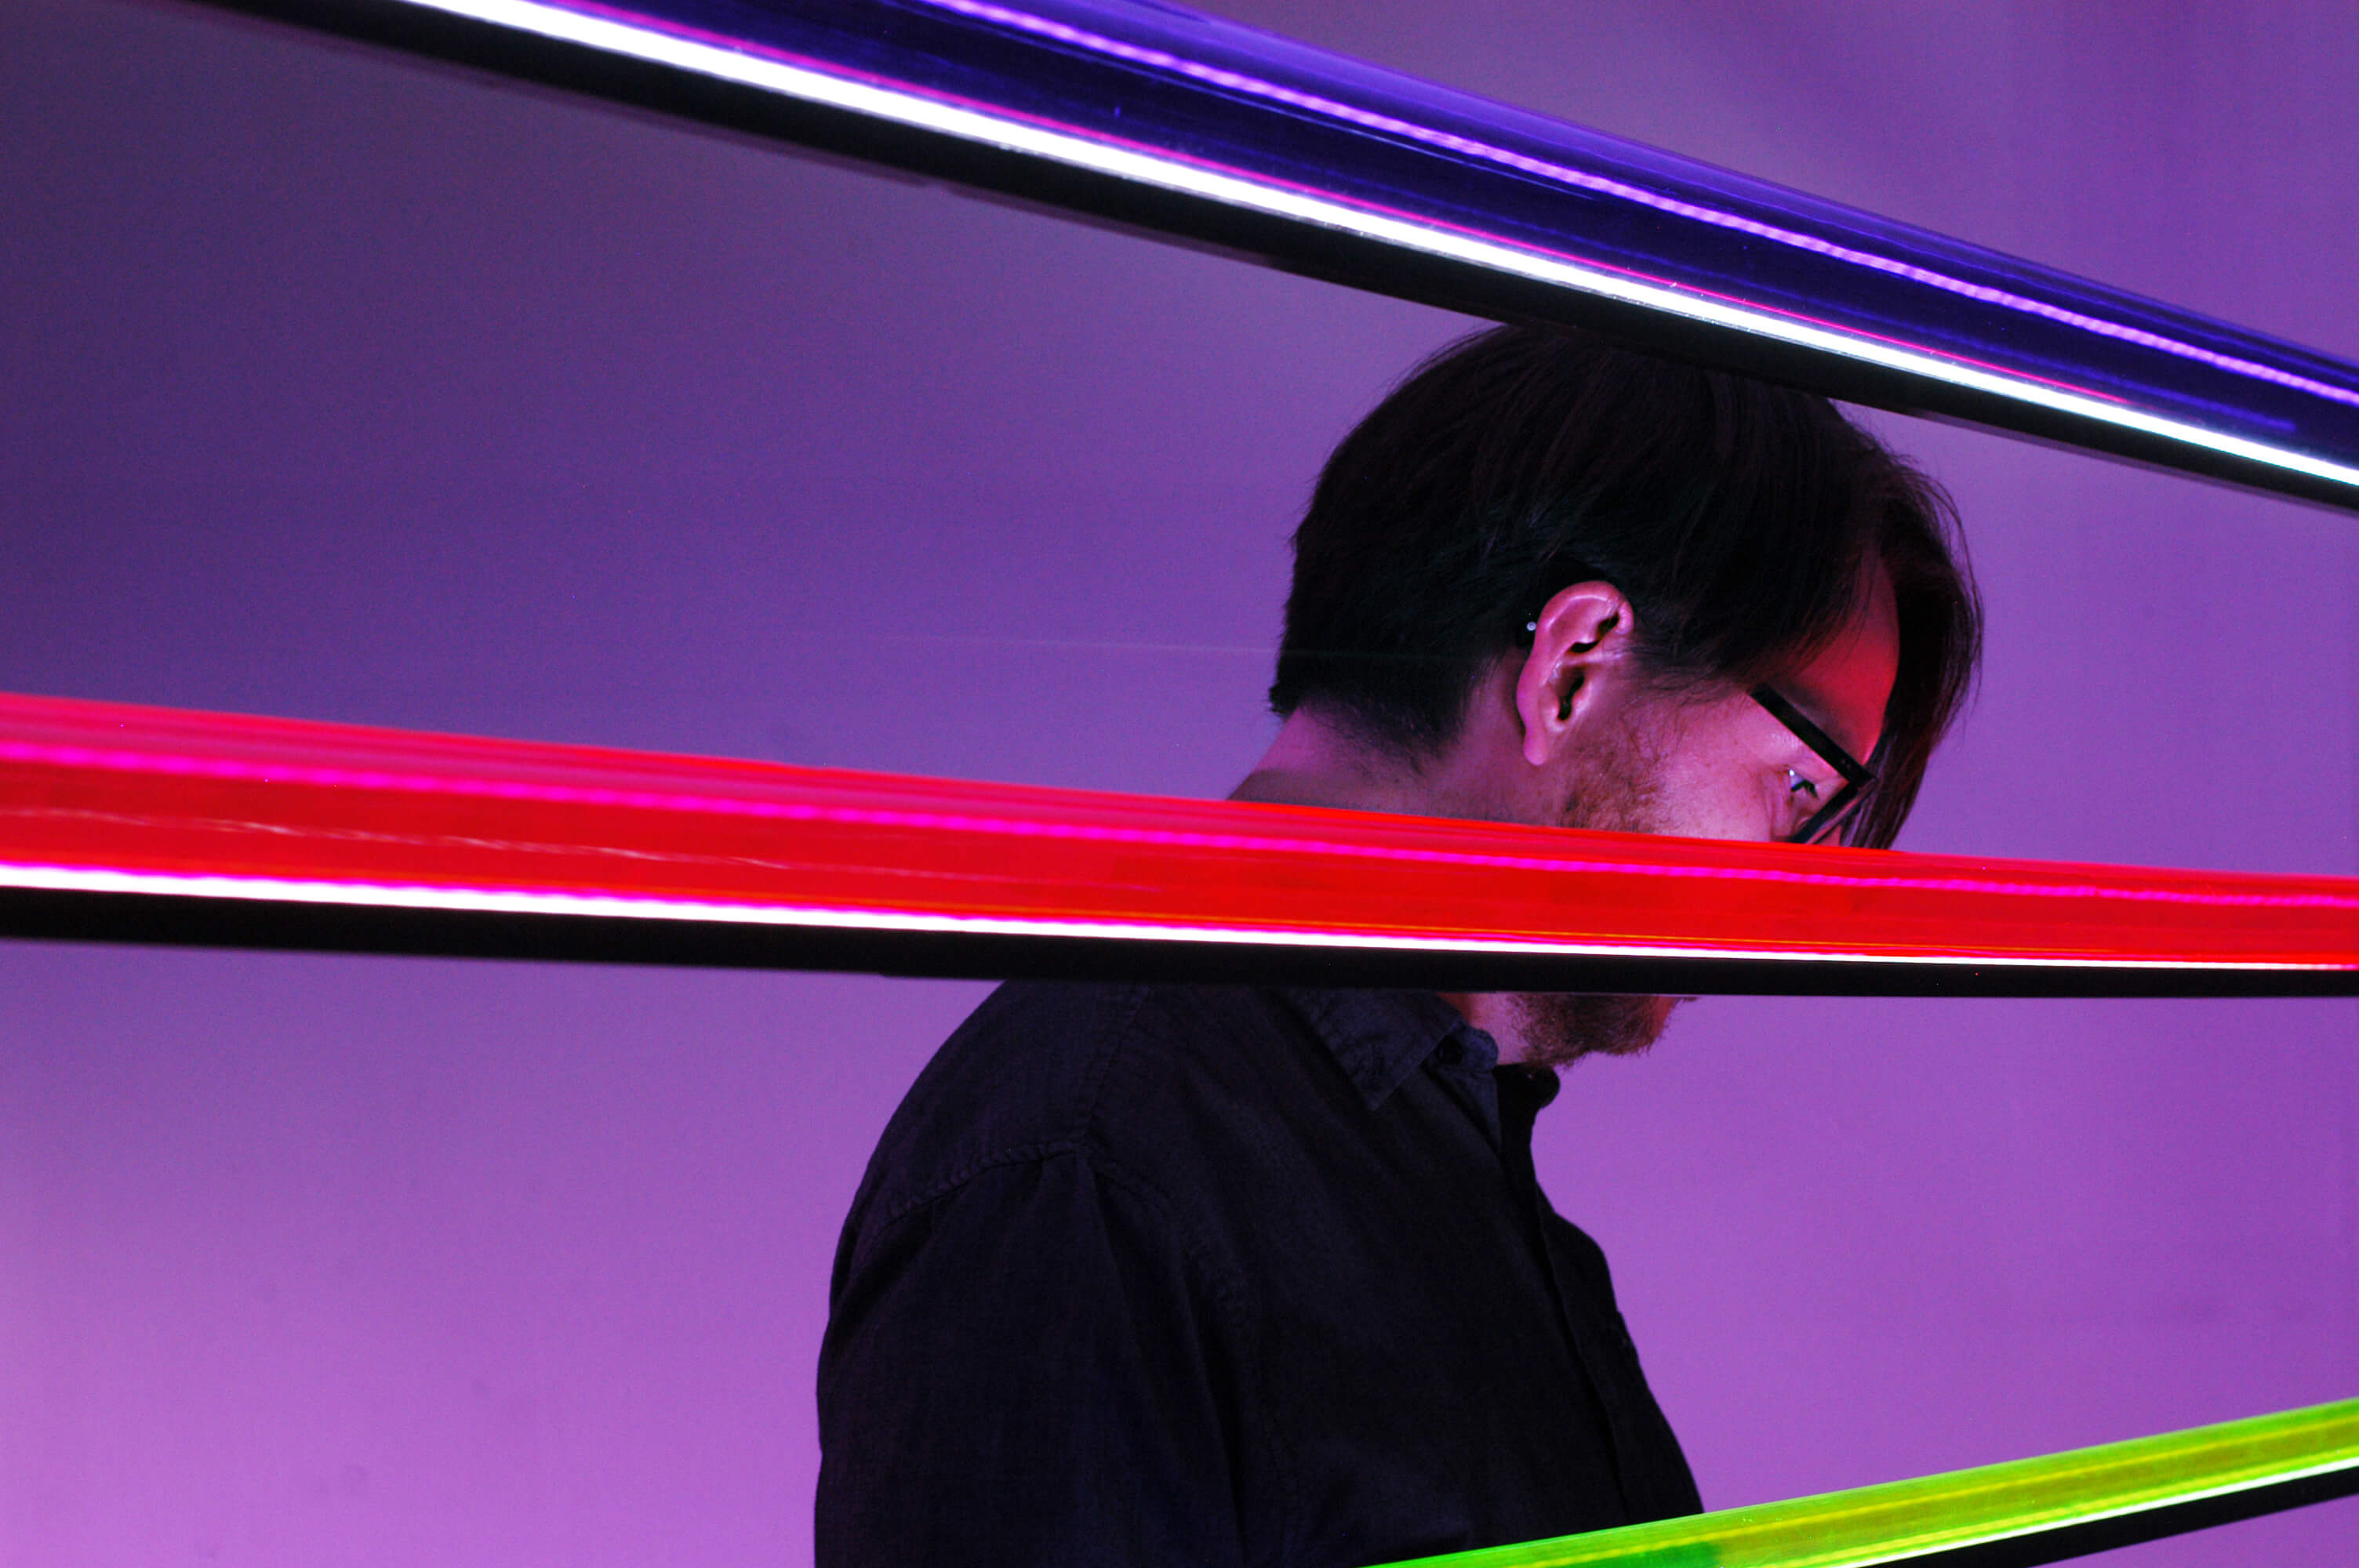 Nicolas Bernier standing in a purple room with three bar lights.